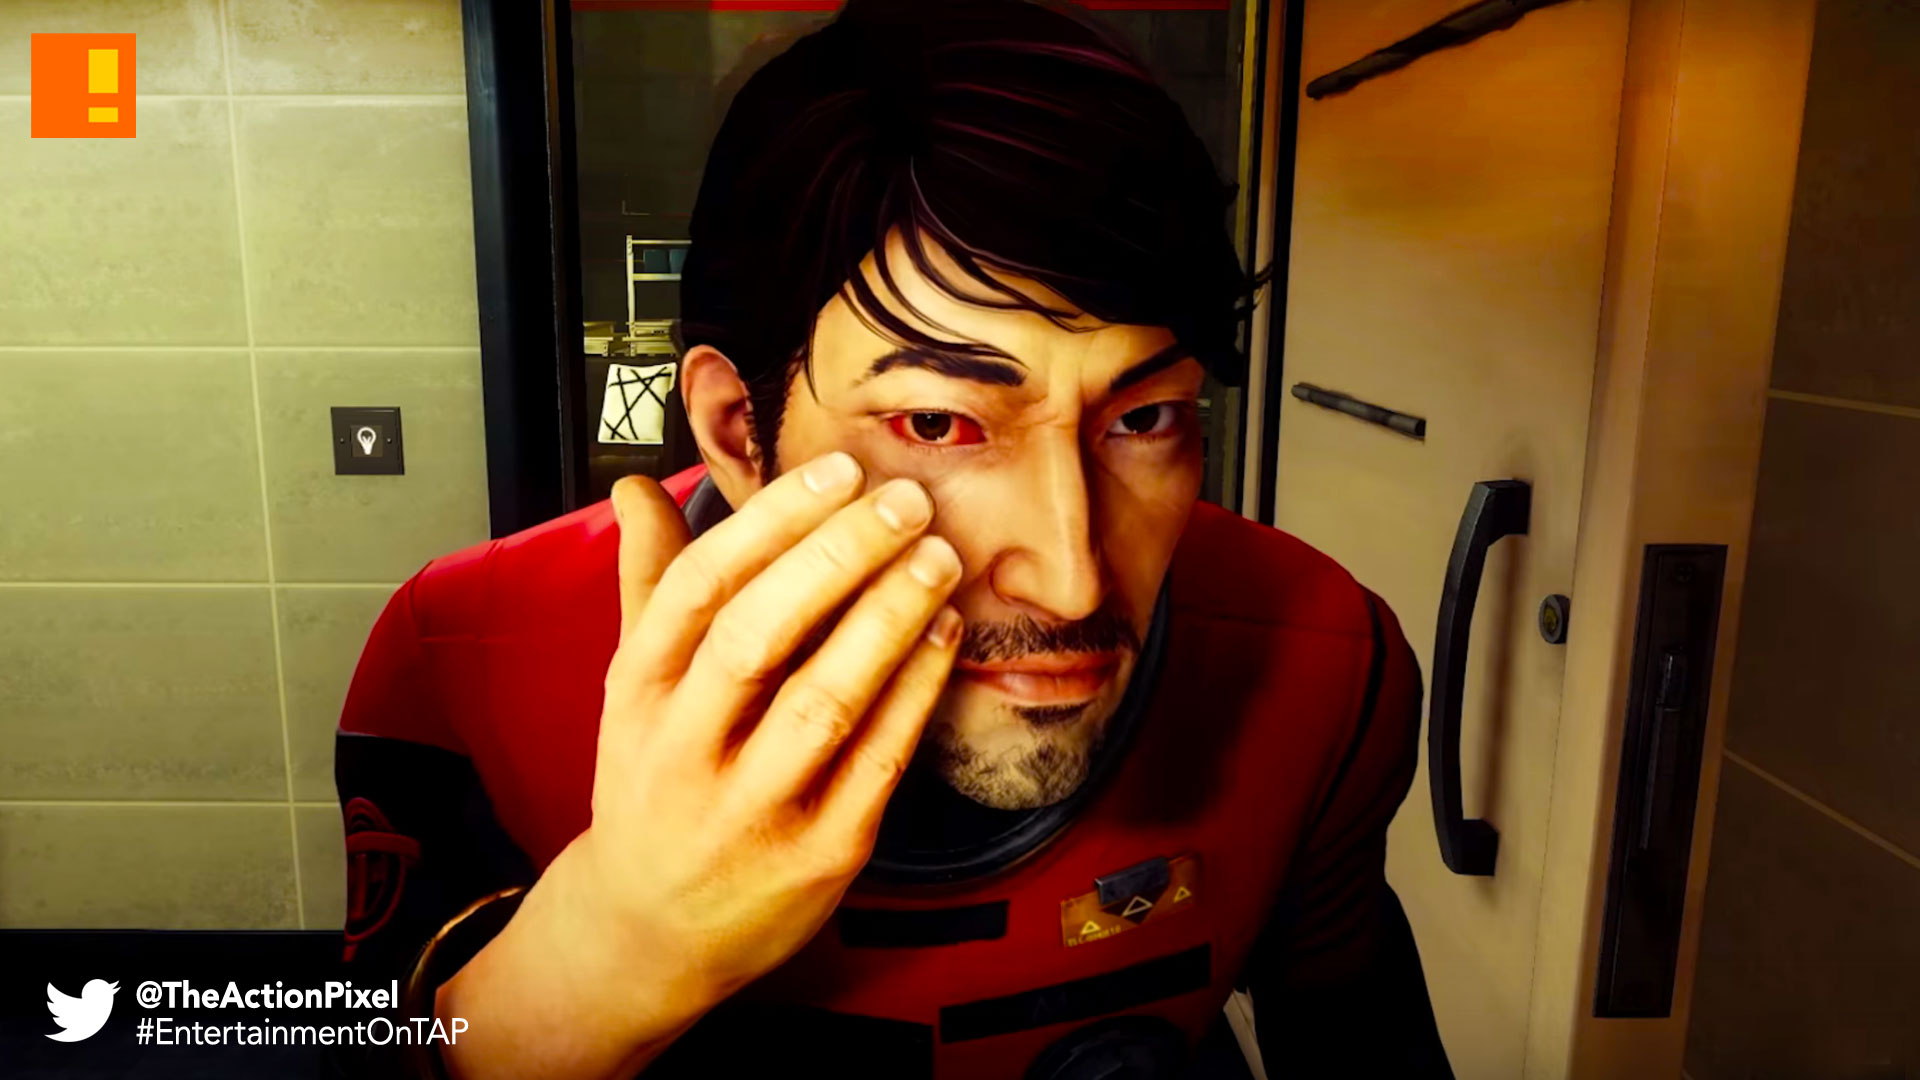 prey, bethesda game studios, bethesda, bethesda softworks, entertainment on tap, the action pixel, #entertainmentontap, @theactionpixel